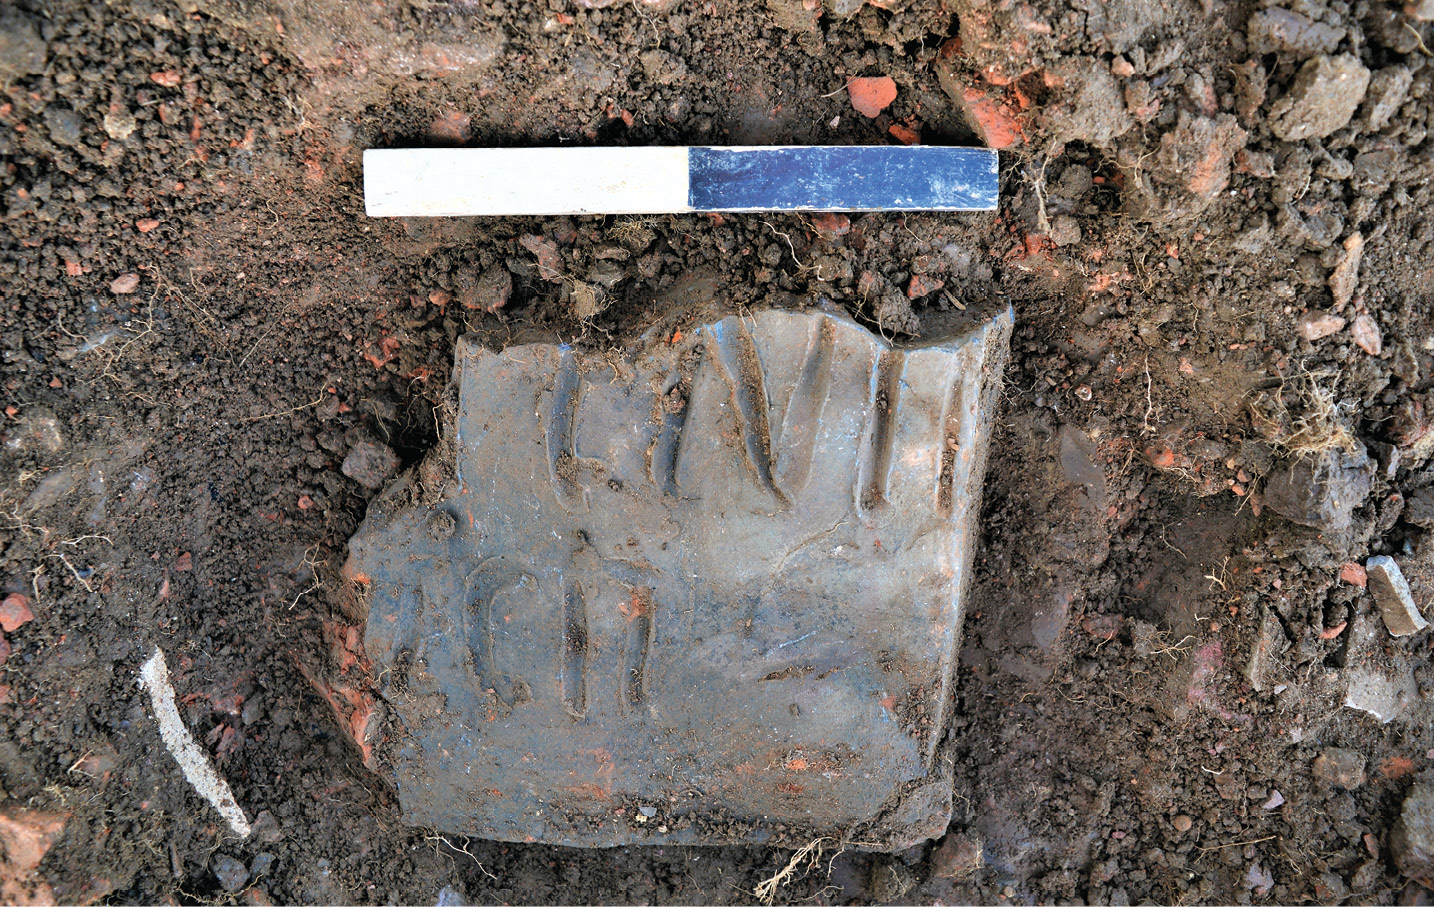 BELOW Does this inscribed tile bear part of the name of one of the tilers who worked on the site?